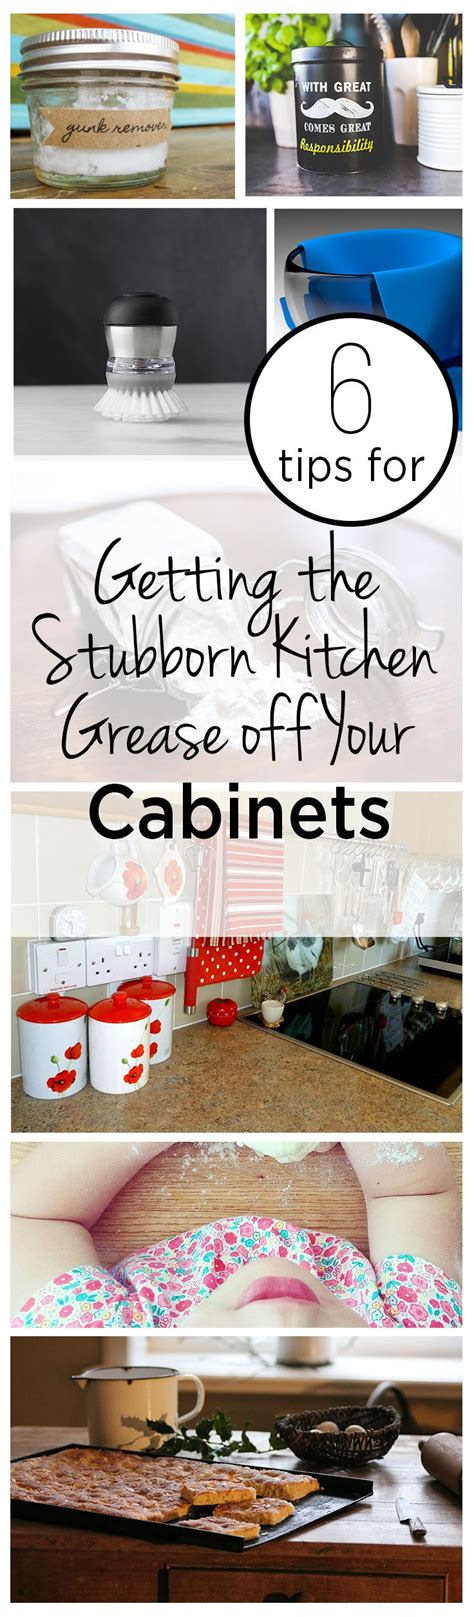 clean grease off cabinets 17 best images about kitchen pantry on pinterest